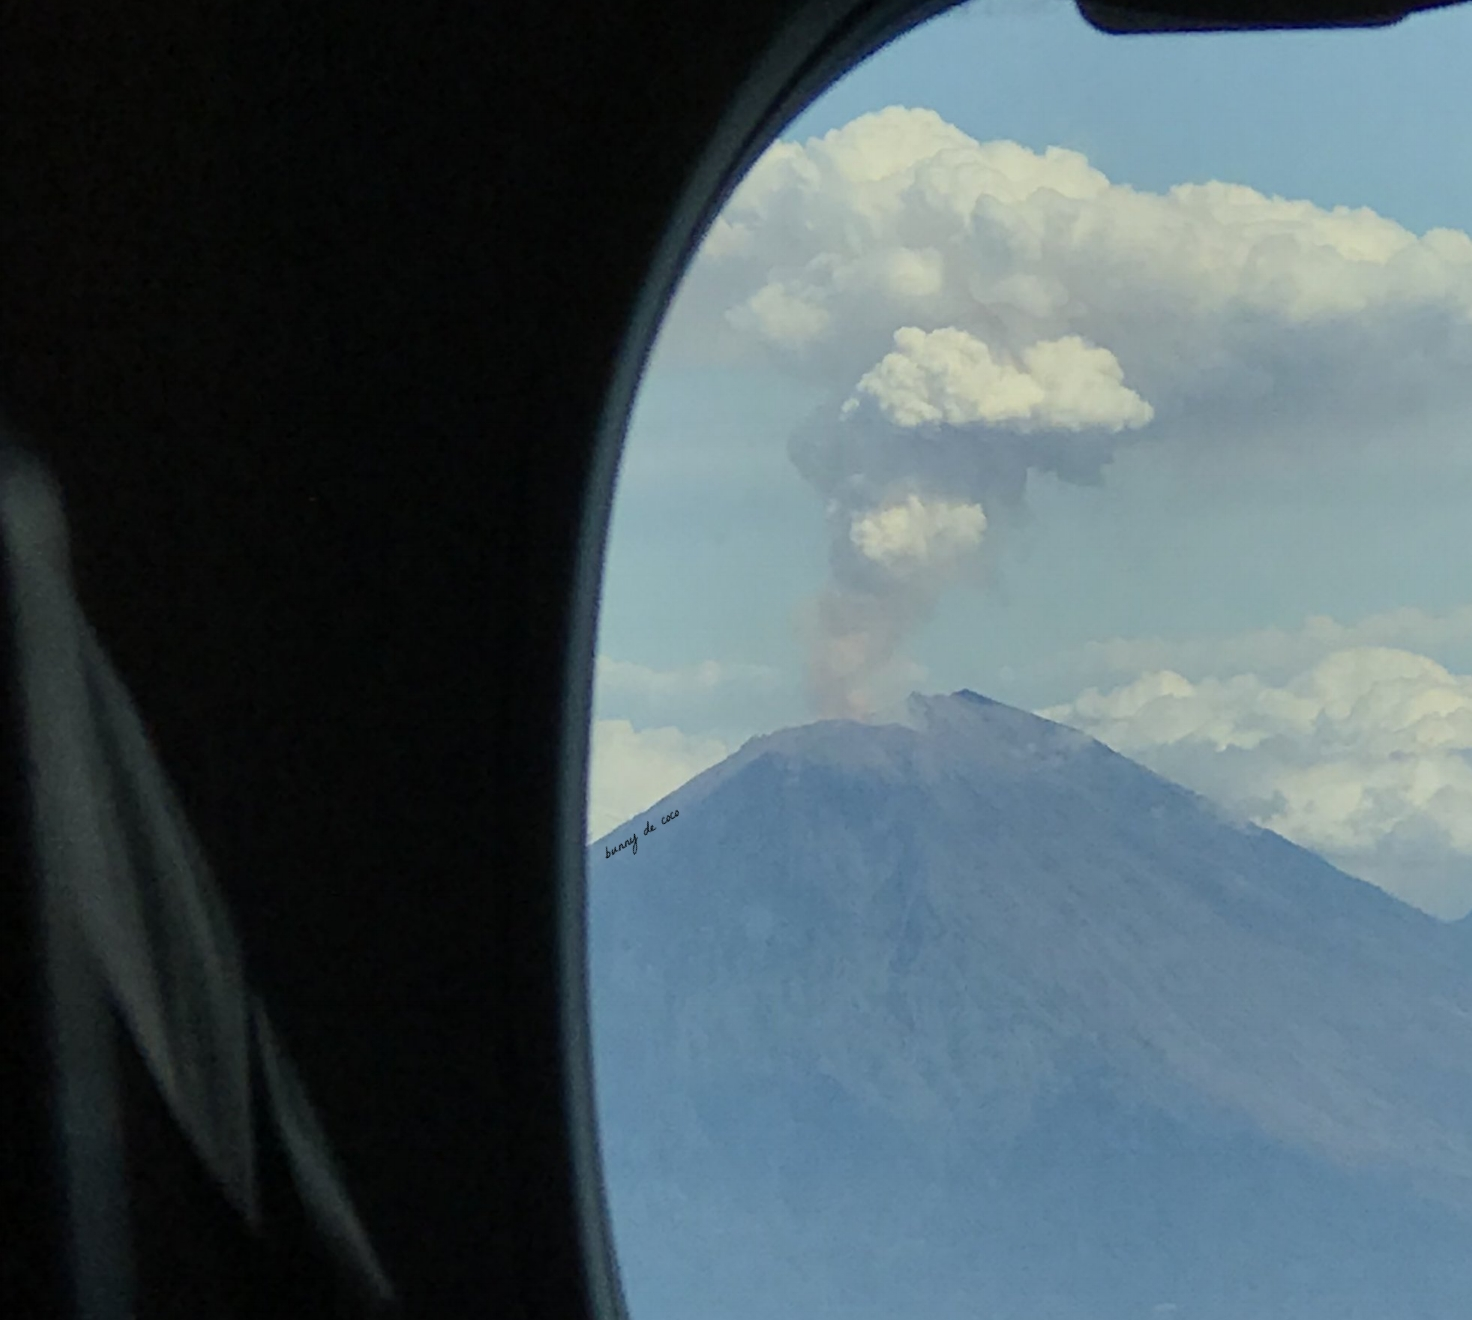 Mount Agung cooling off after an eruption, as seen from my airplane seat.